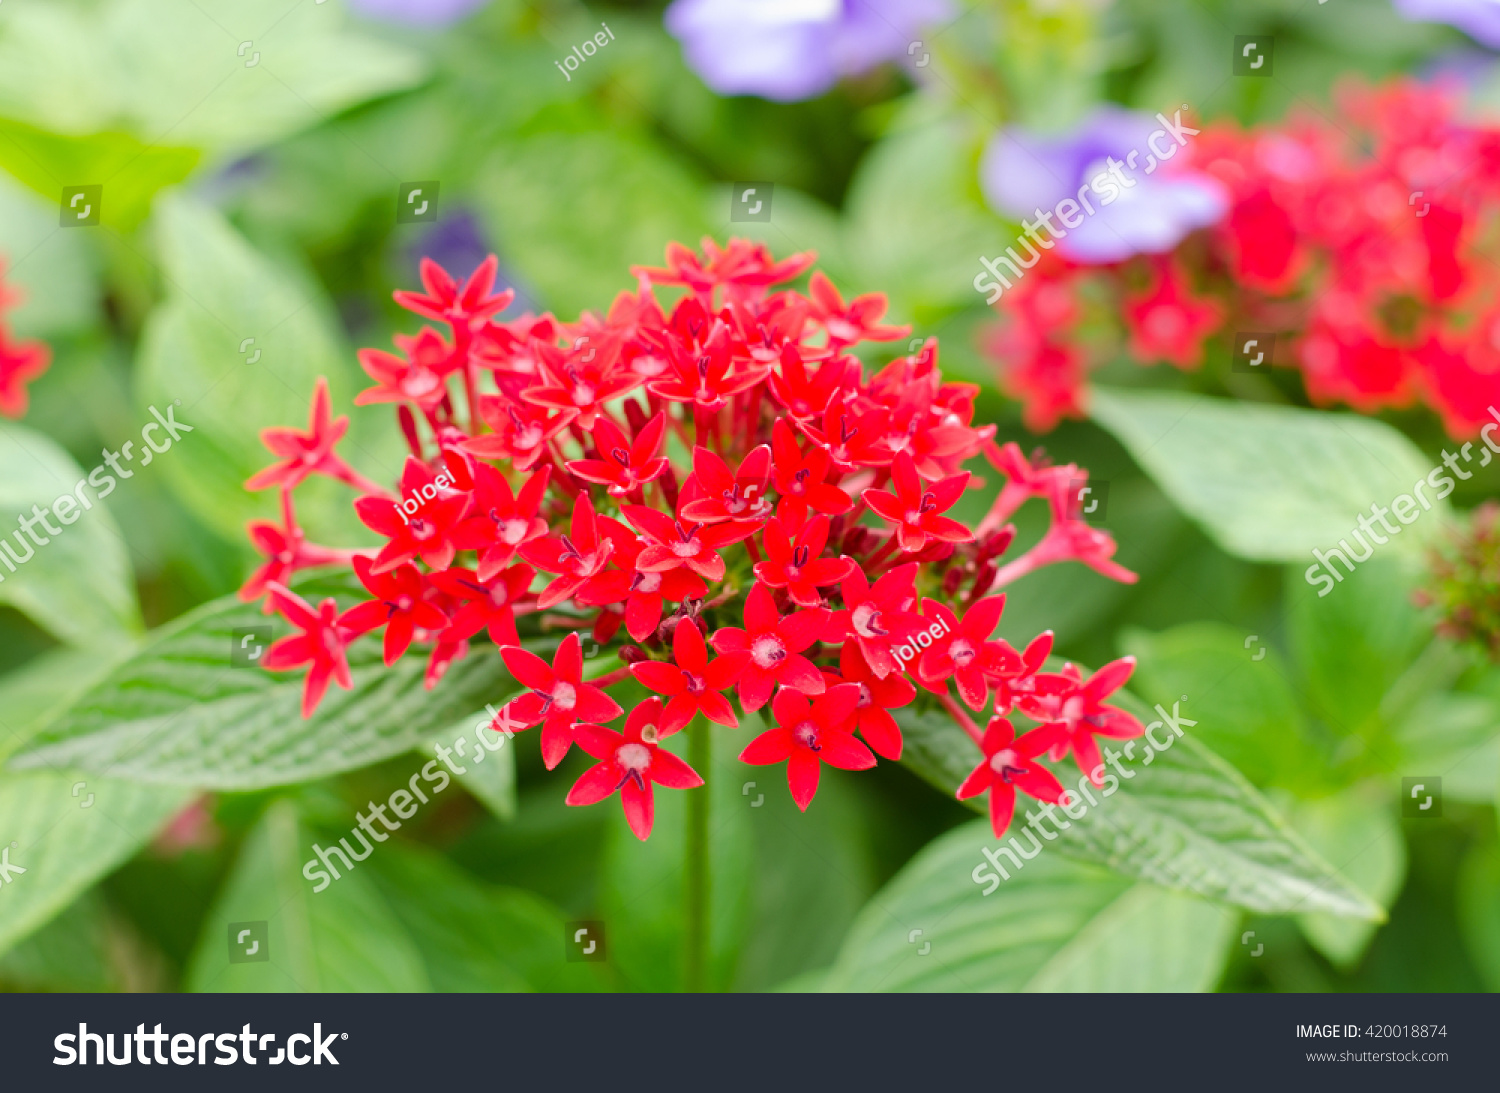 Egyptian star cluster red star flower stock photo edit now egyptian star cluster red star flower izmirmasajfo